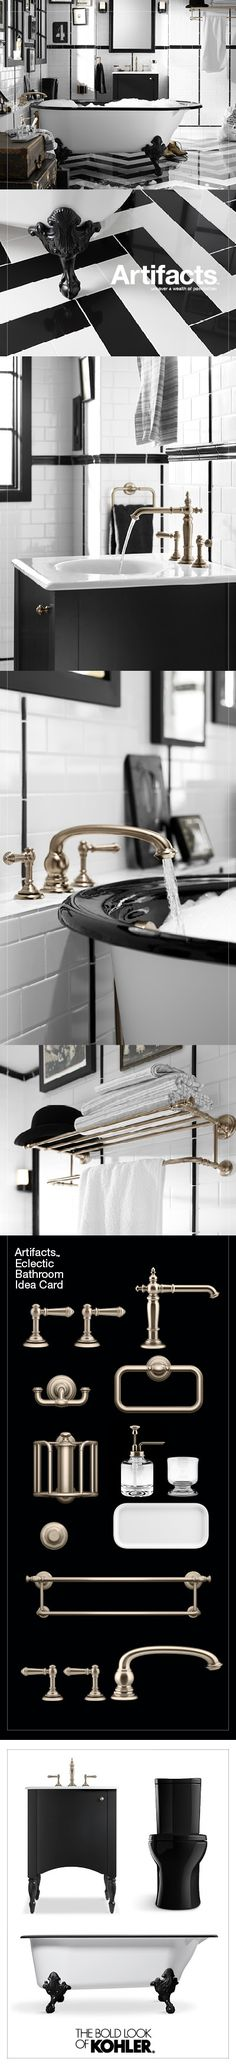 Create A Look All Your Own With The Kohler Artifacts Collection Black And White Bathroom